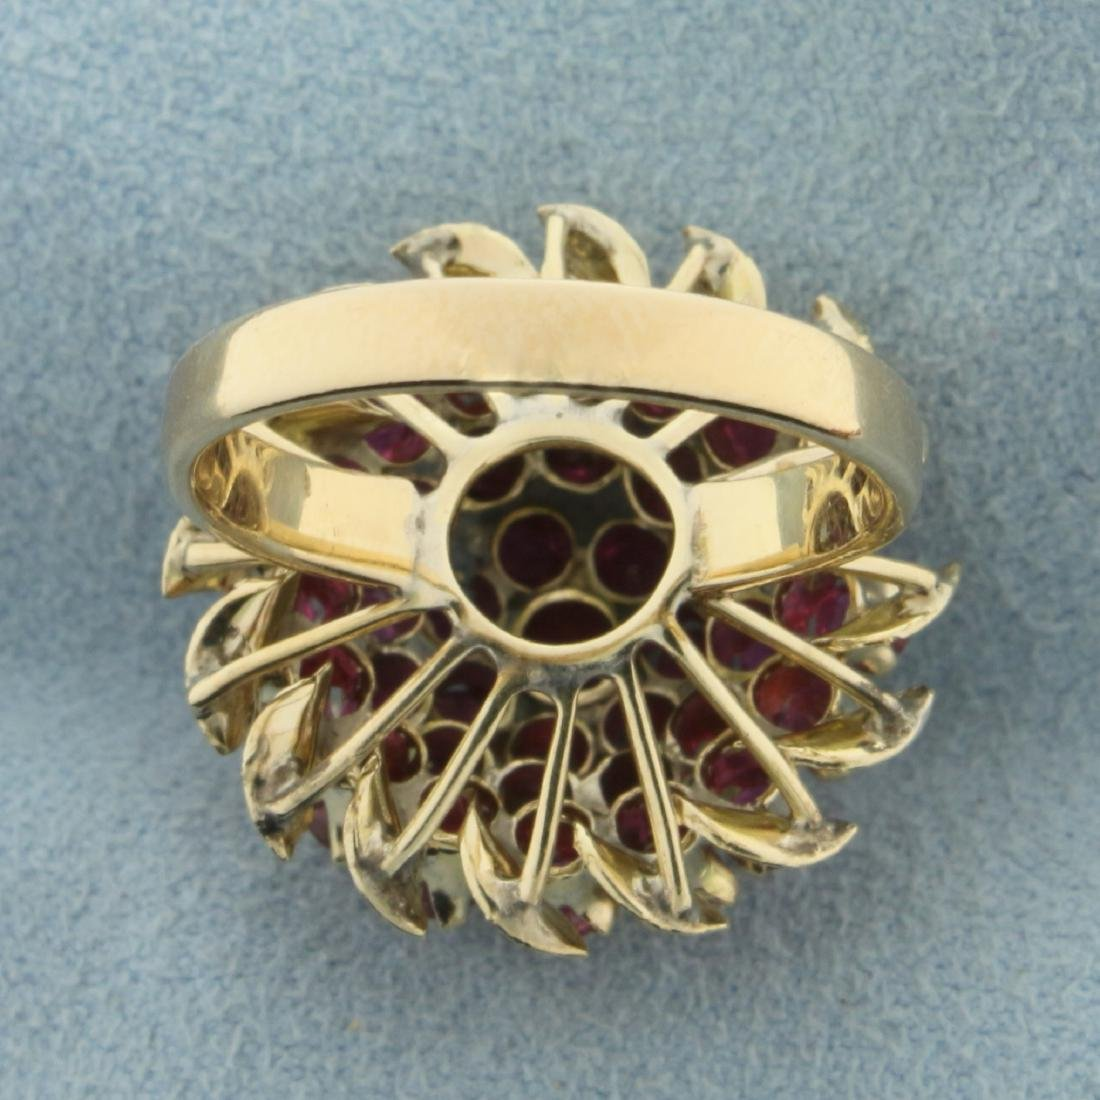 2ct TW Natural Ruby Ring in 18K Yellow Gold - 4